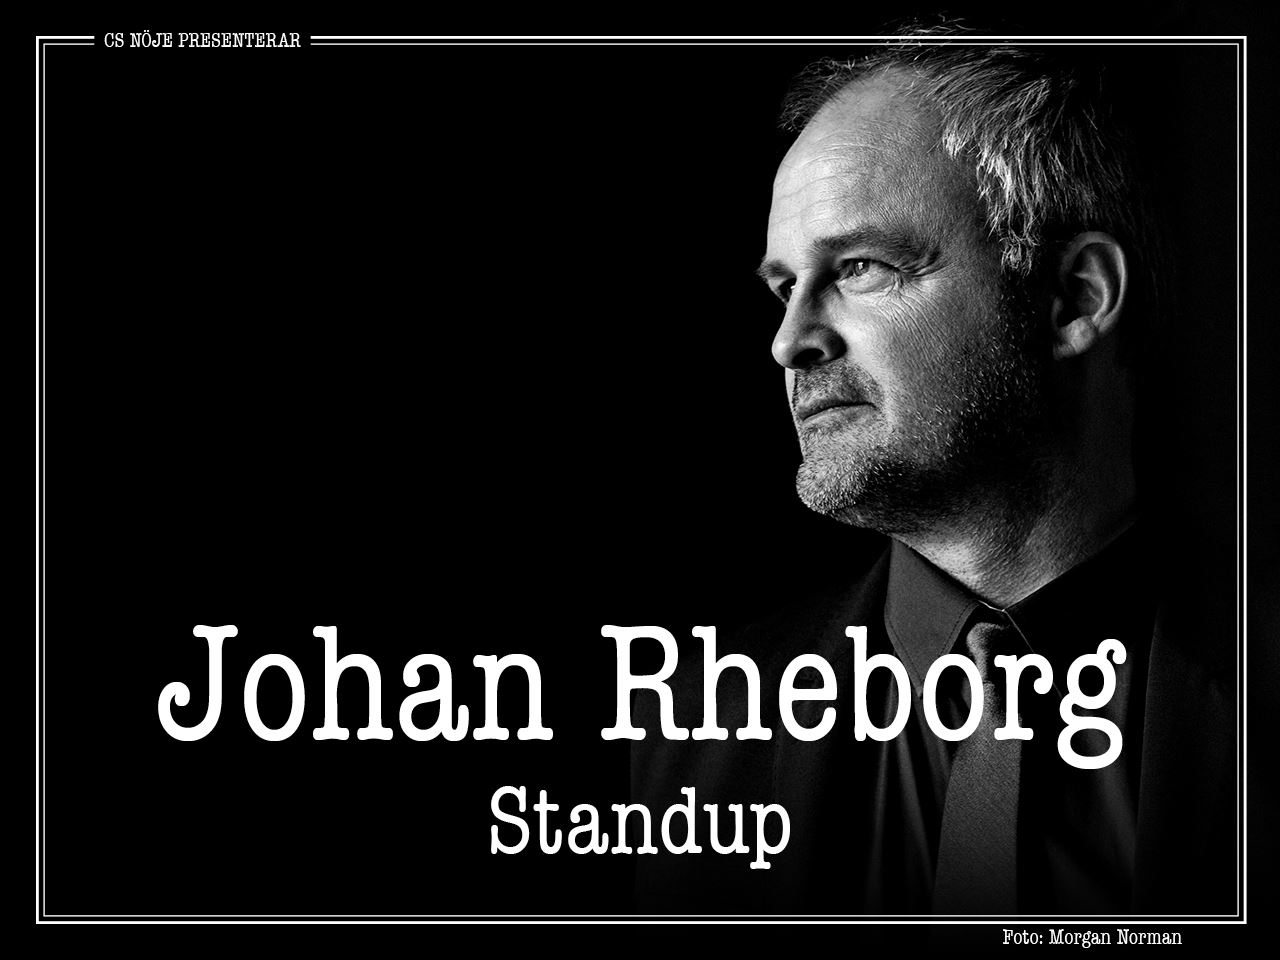 Johan Rheborg - Stand up